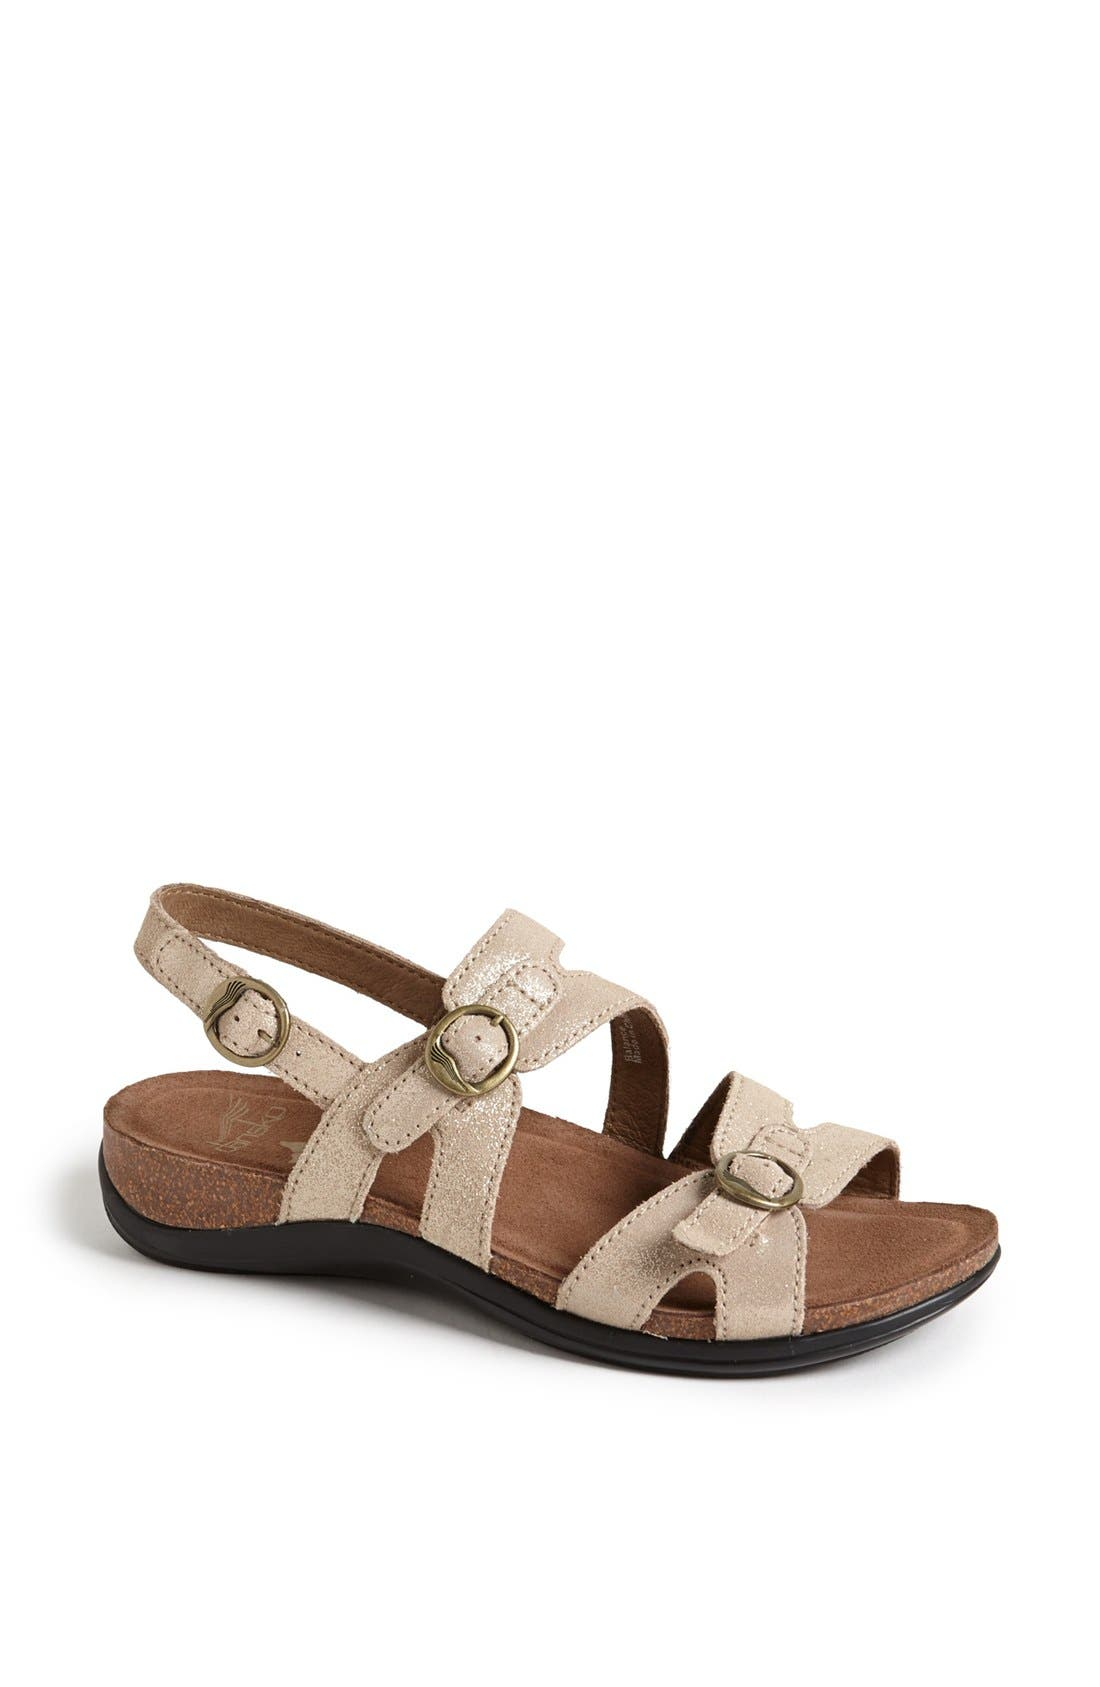 Main Image - Dansko 'Jameson' Leather Sandal